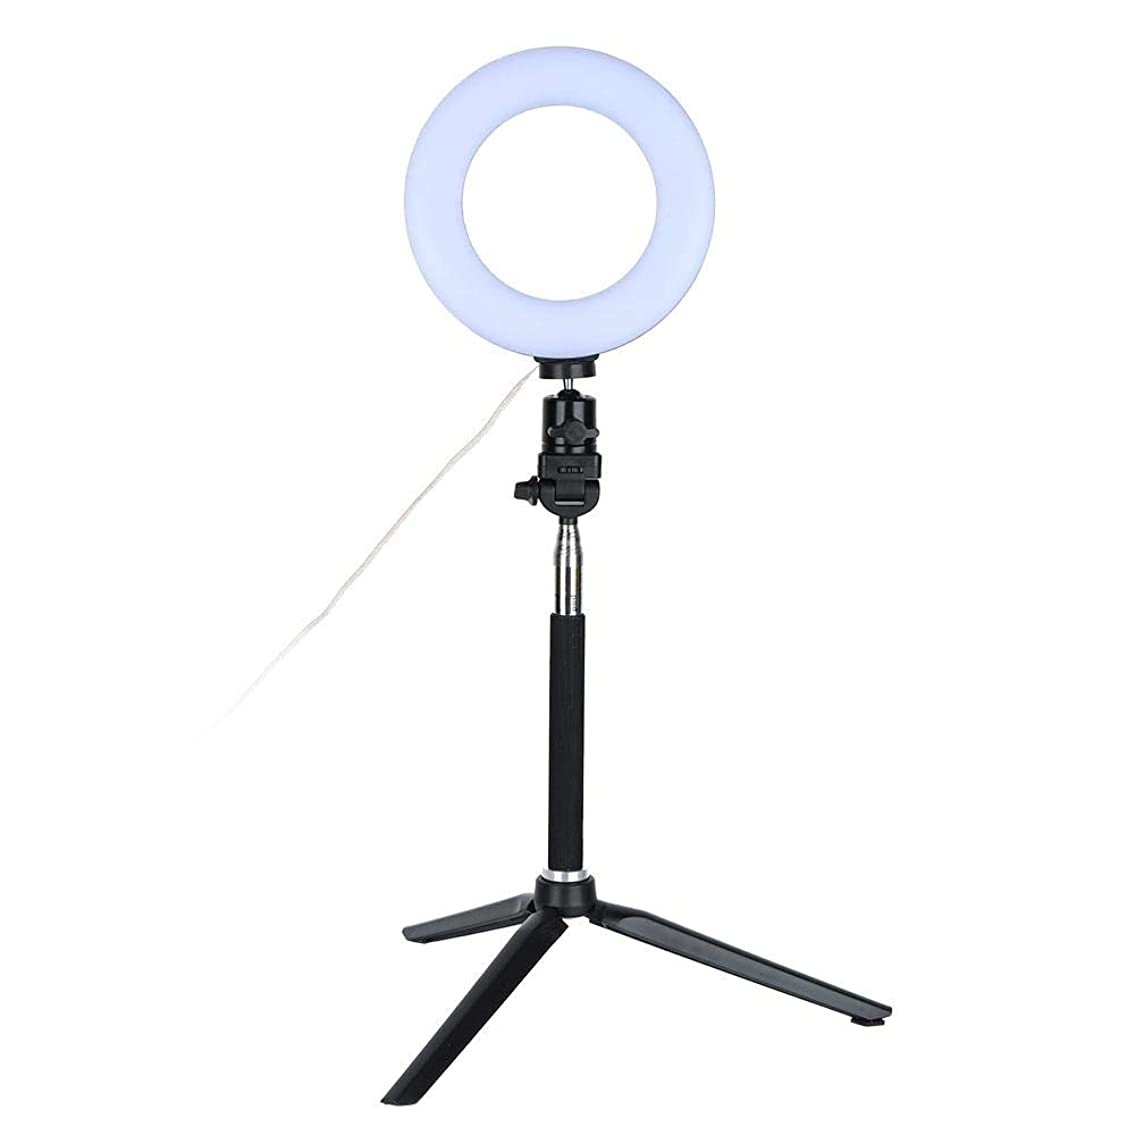 Ring Fill Light, Easy To Set 6 inch Makeup LED Lights With Tripod Stand, ABS+PC Material Fill-in Lamp For Live streaming, Tattoo, Filming, Nail Art Etc